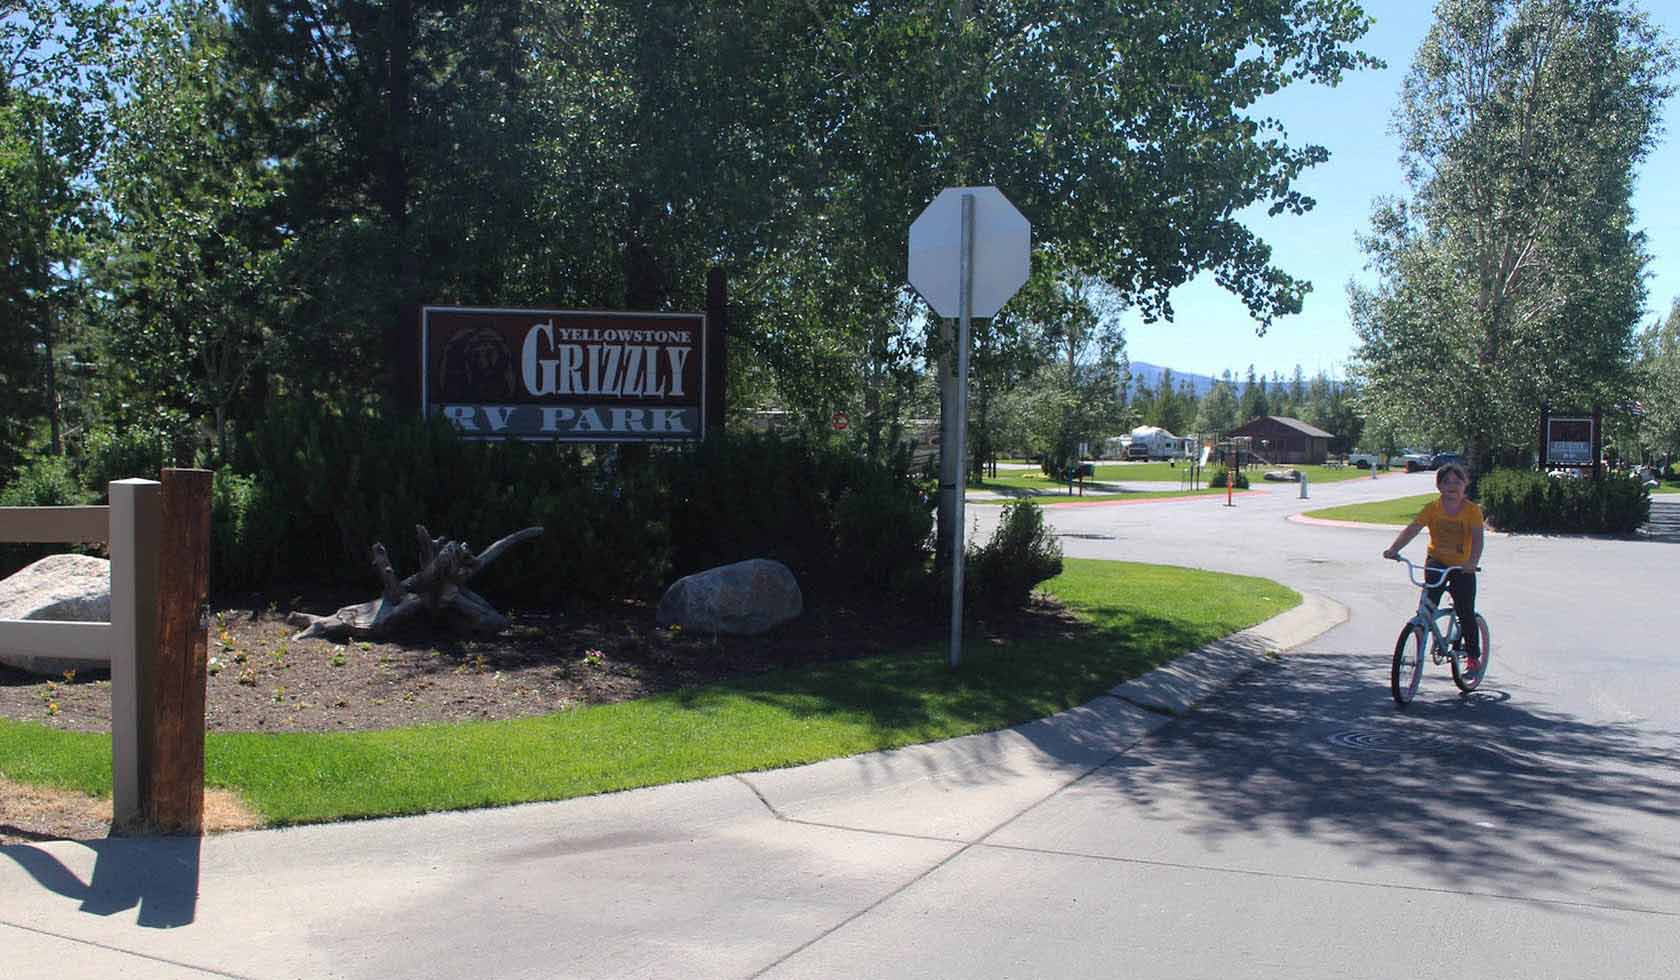 Yellowstone Grizzly RV Park profile image